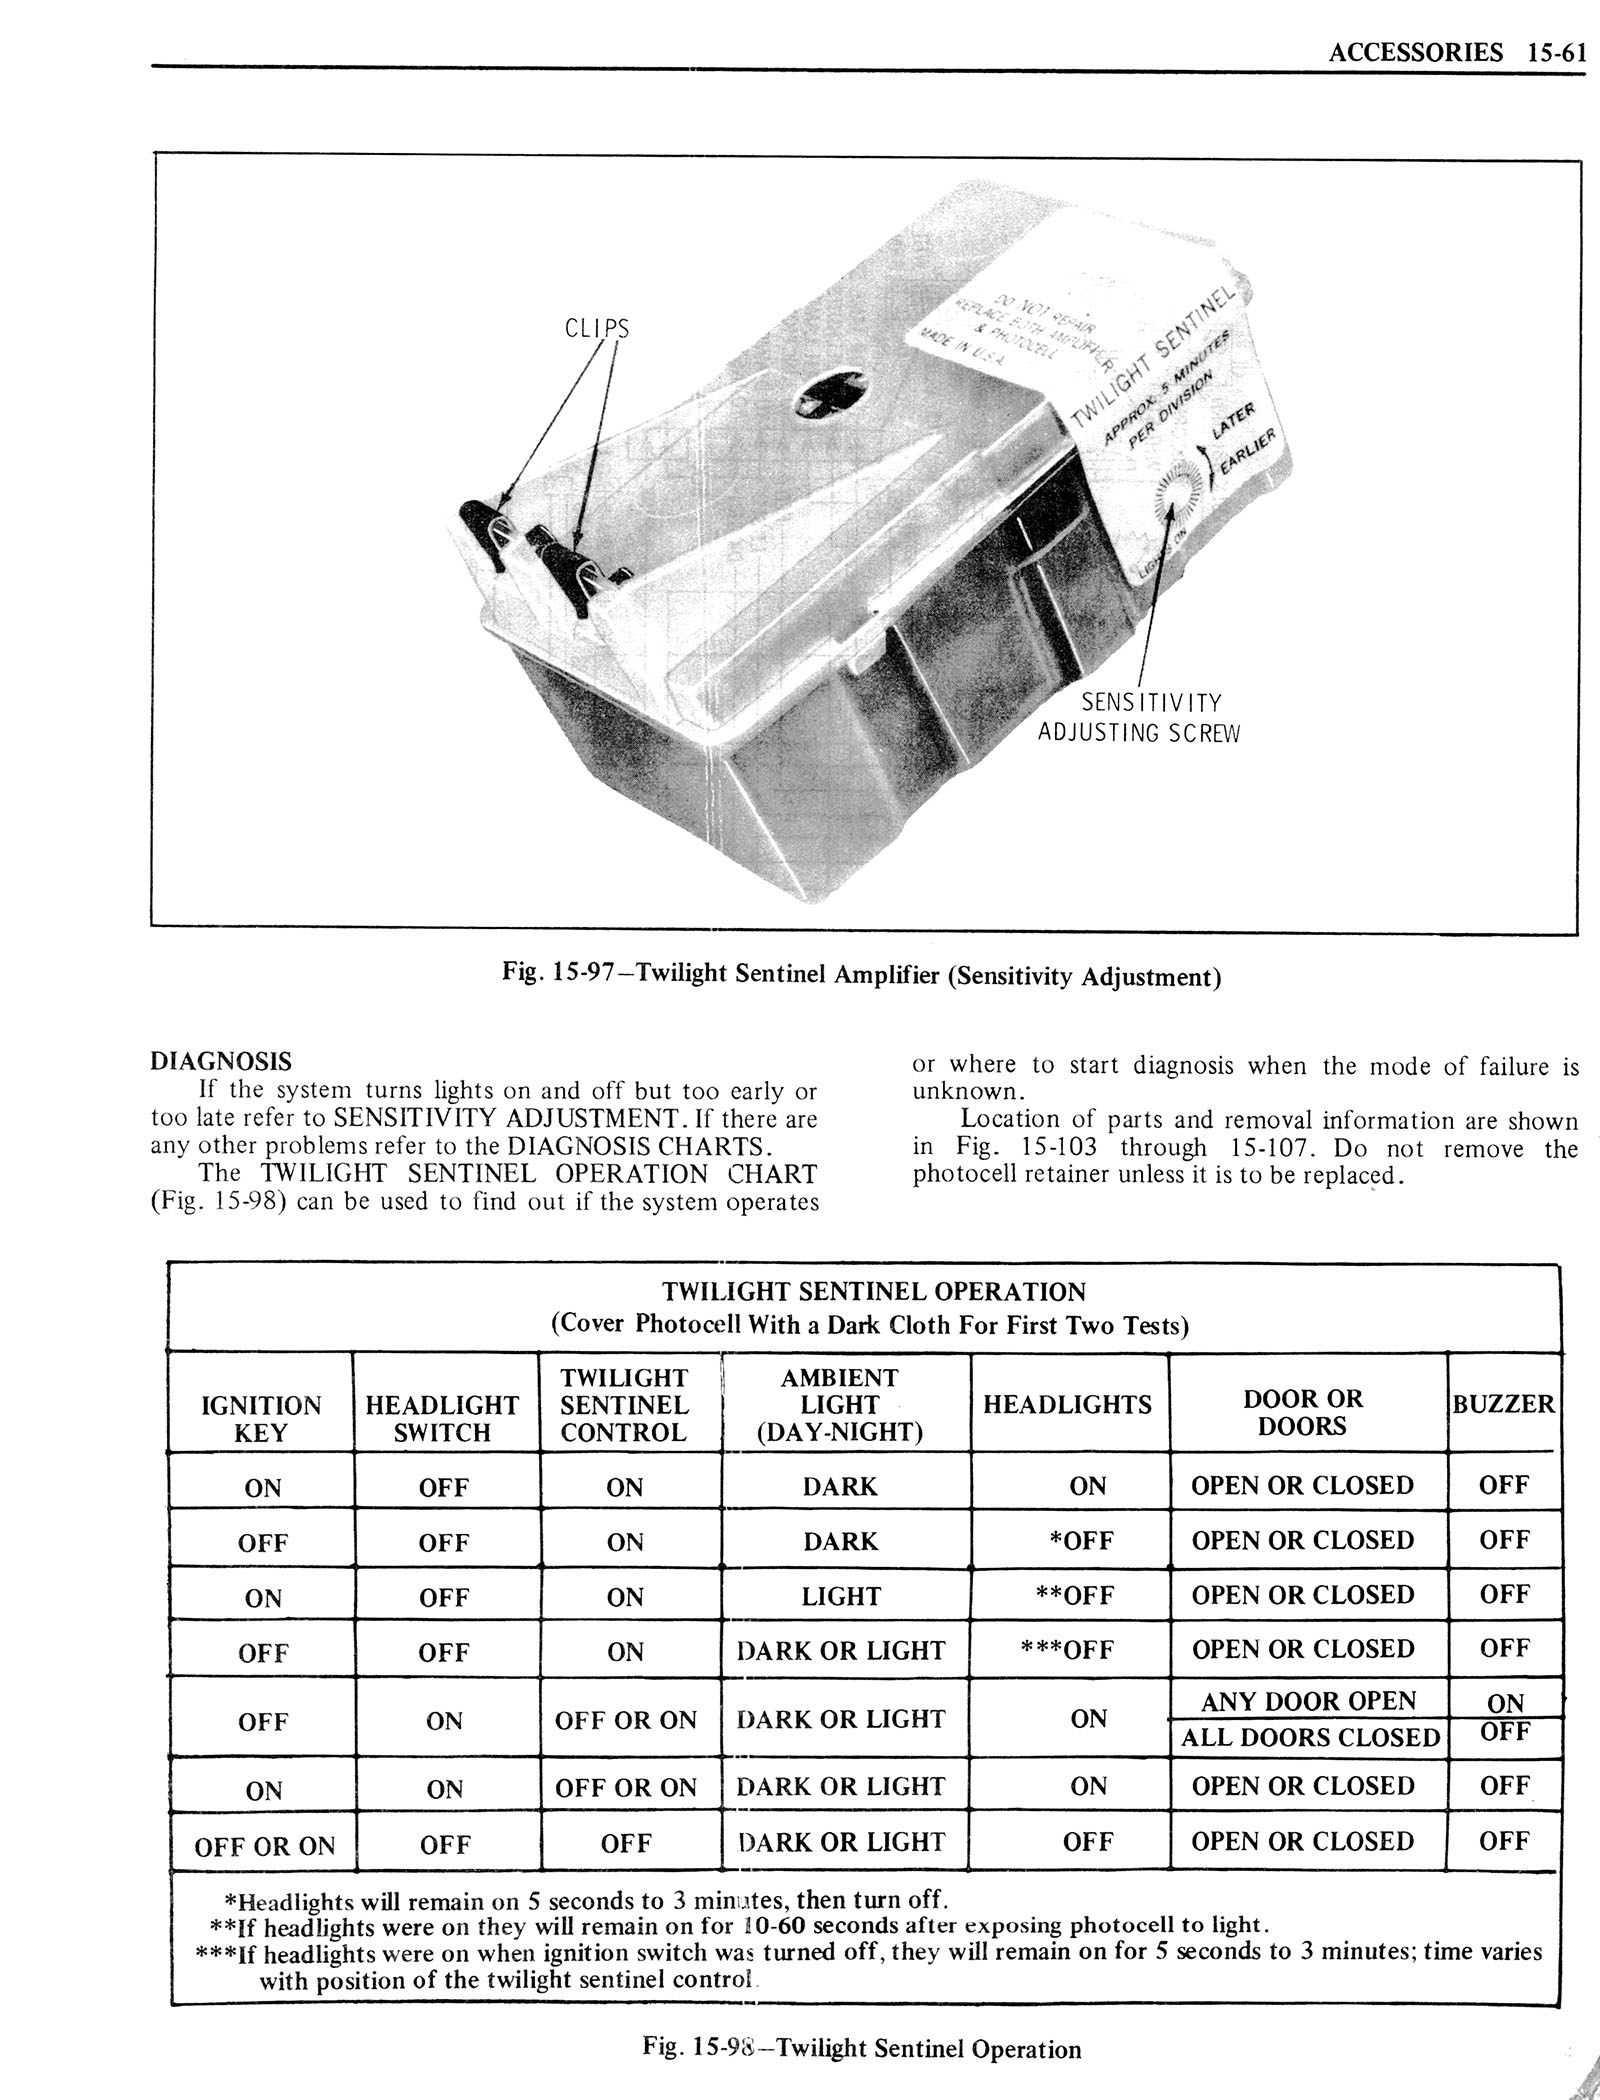 1976 Oldsmobile Service Manual page 1363 of 1390